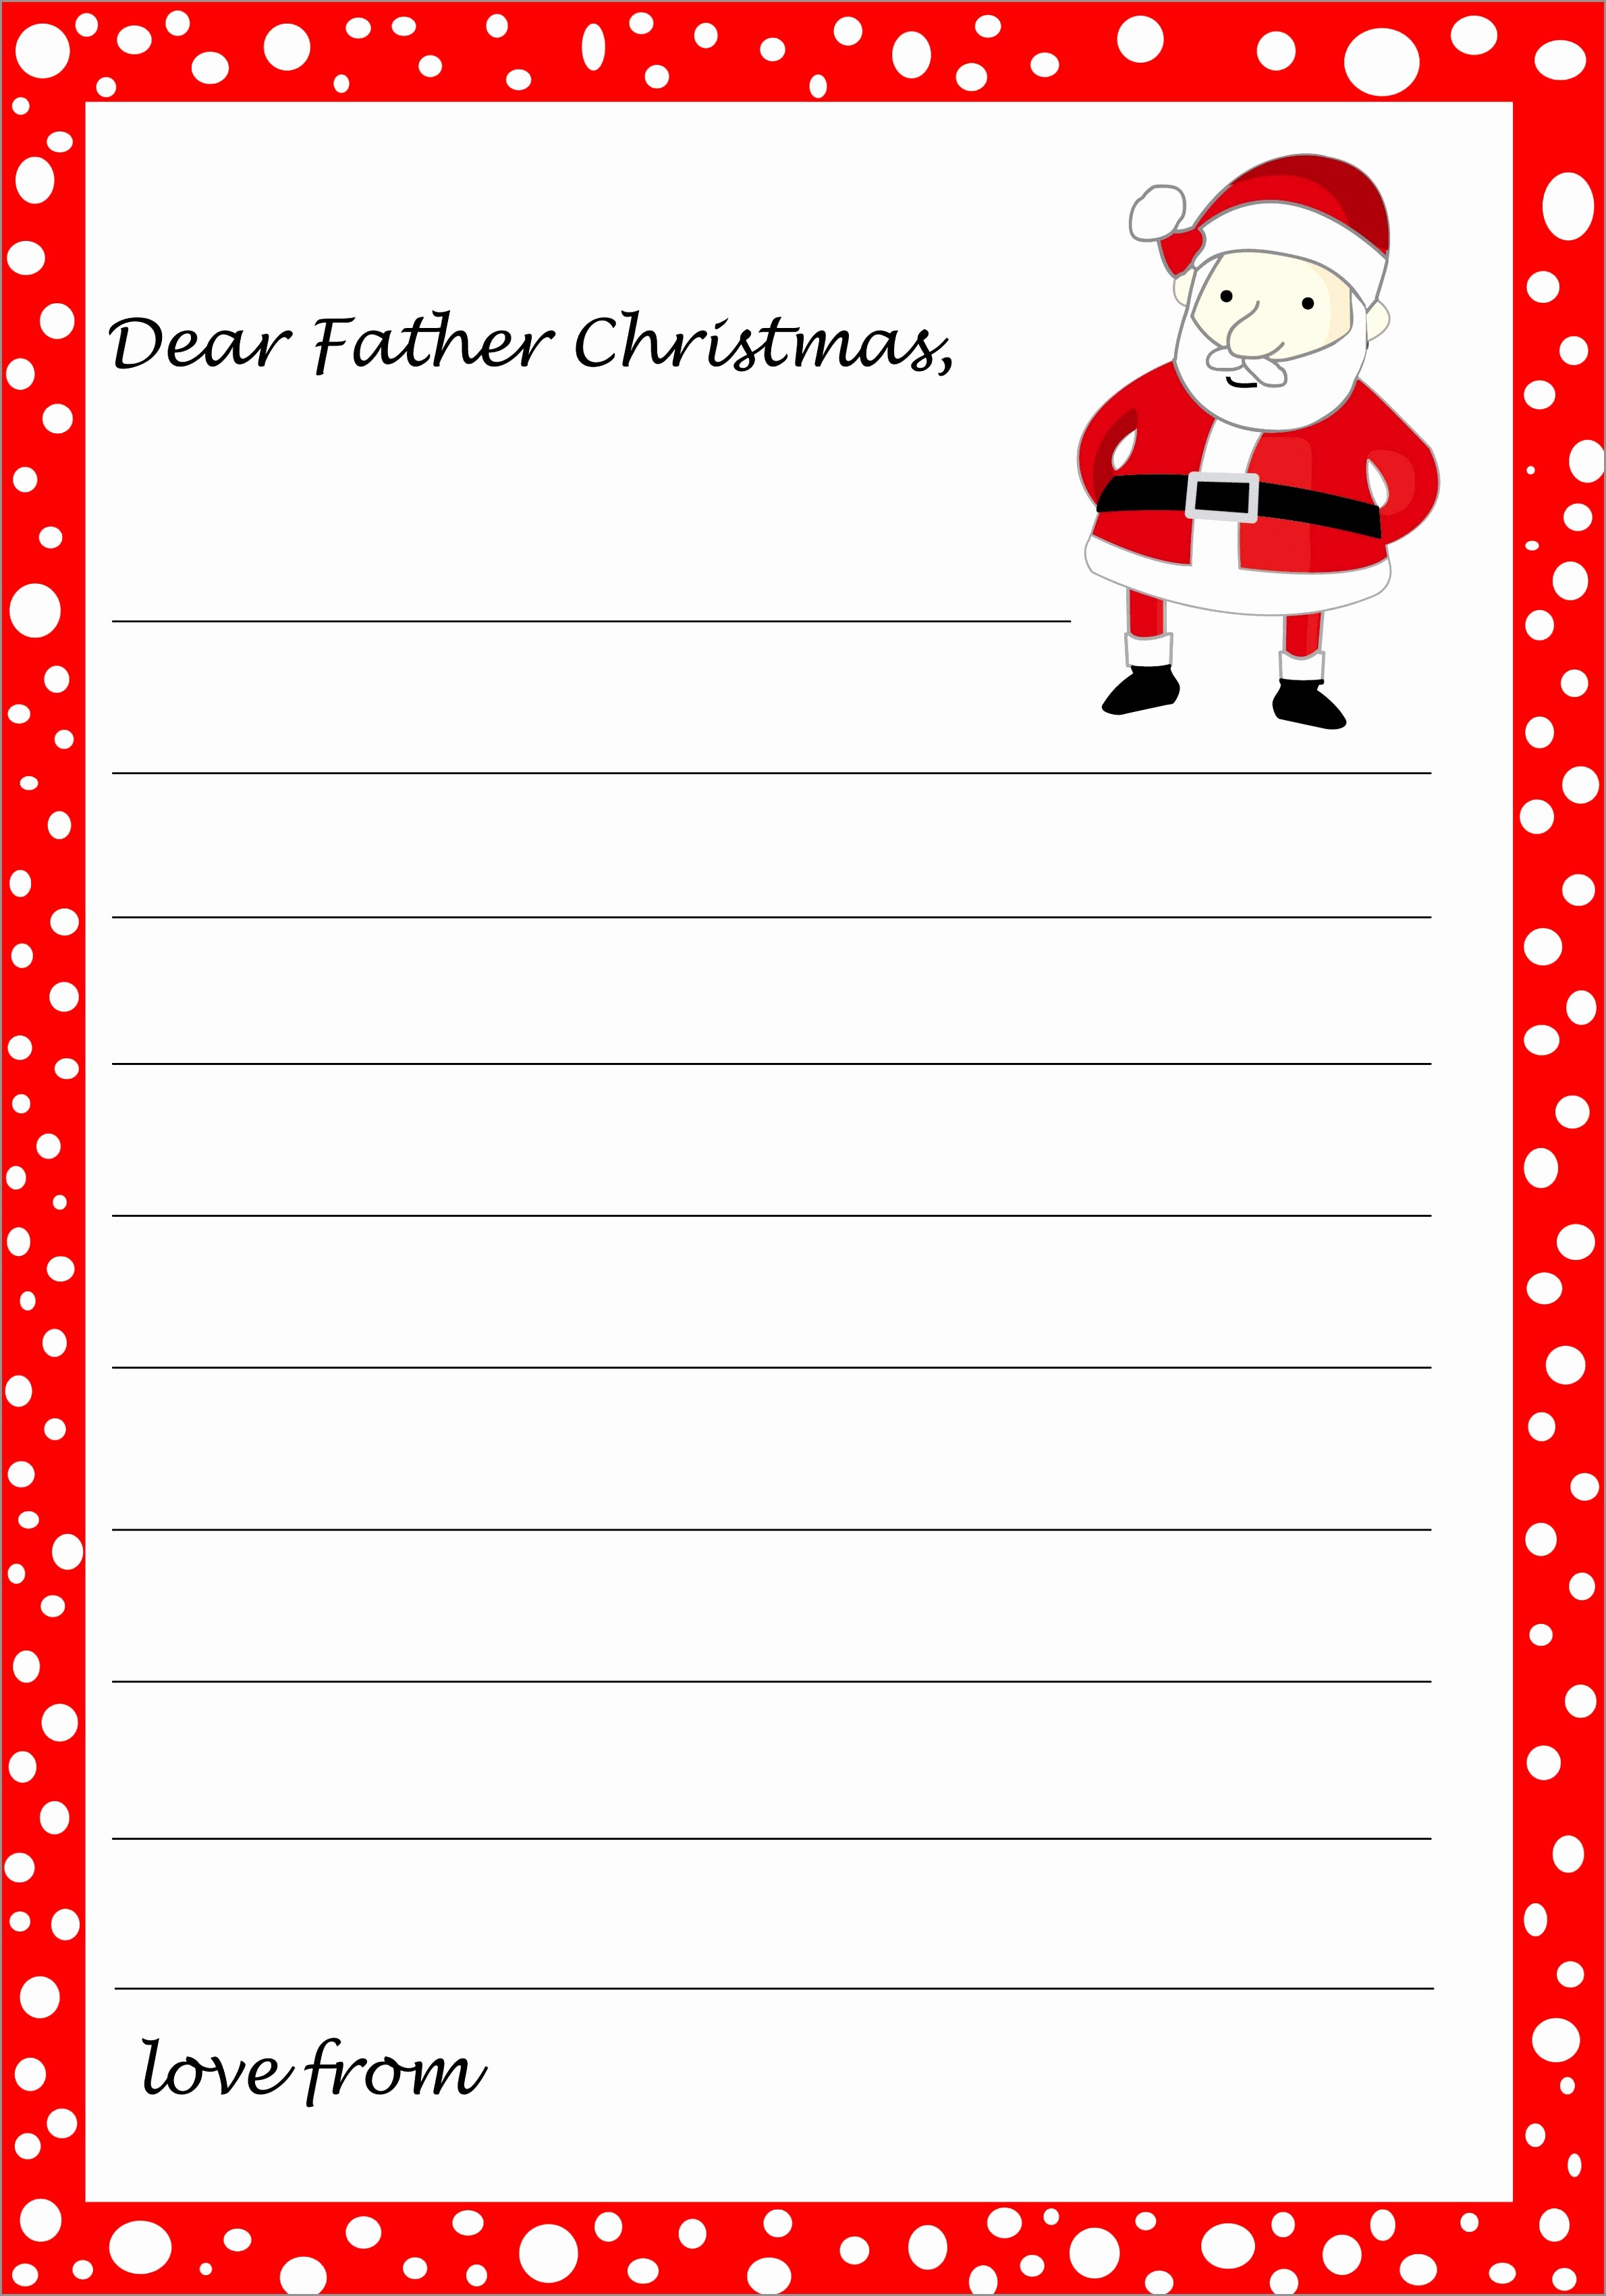 Free Ms Word Letter Templates New 5 Holiday Letter Template Microsoft Word Eouti